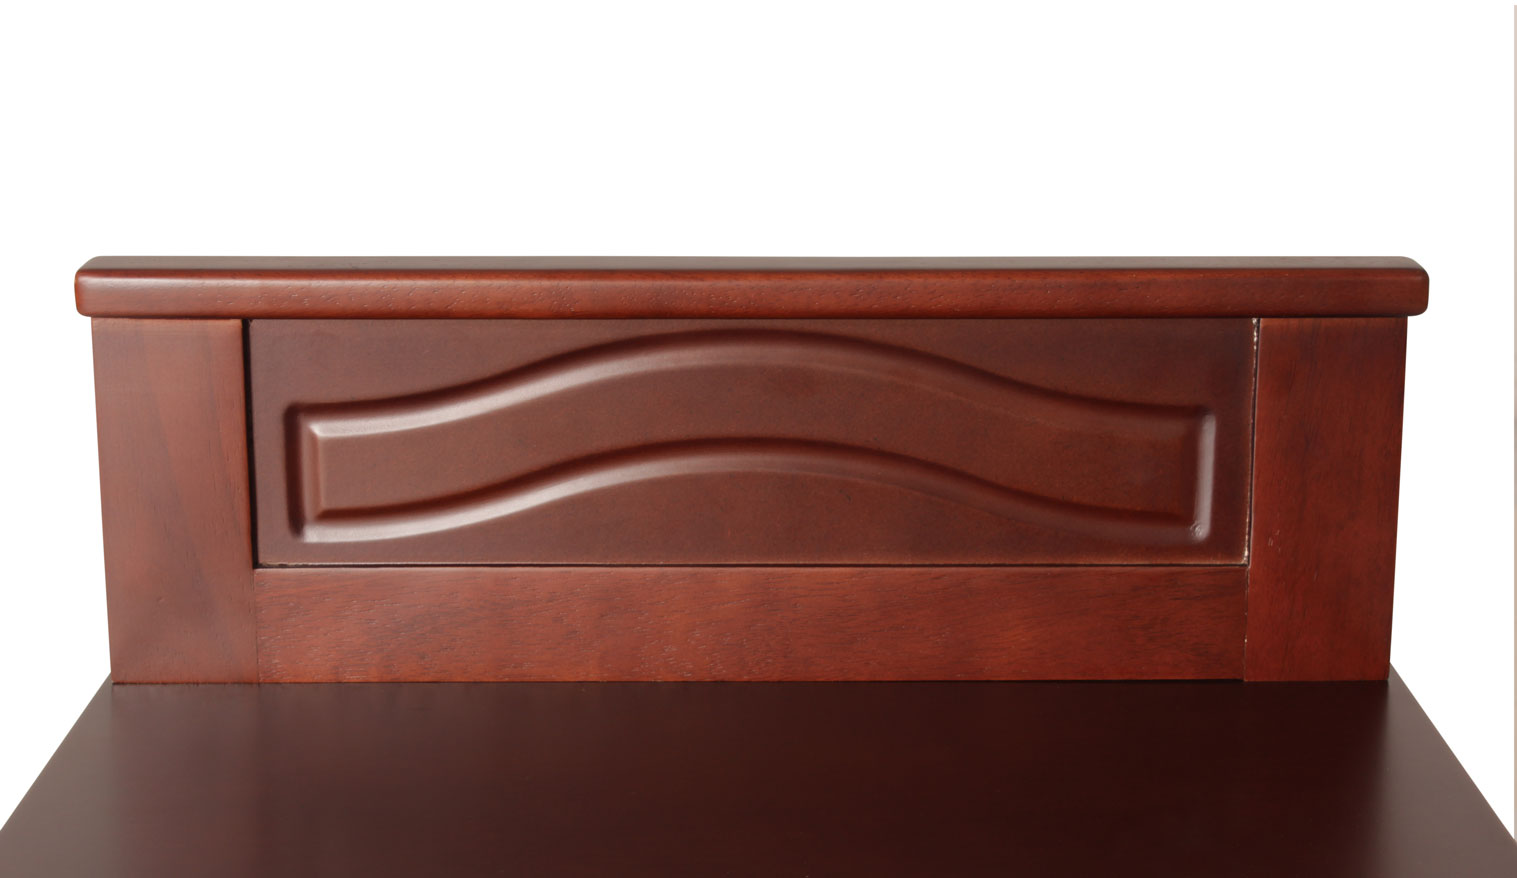 touchwood_ajantha_solidwood_bed_side_table_walnut_finish_6_4